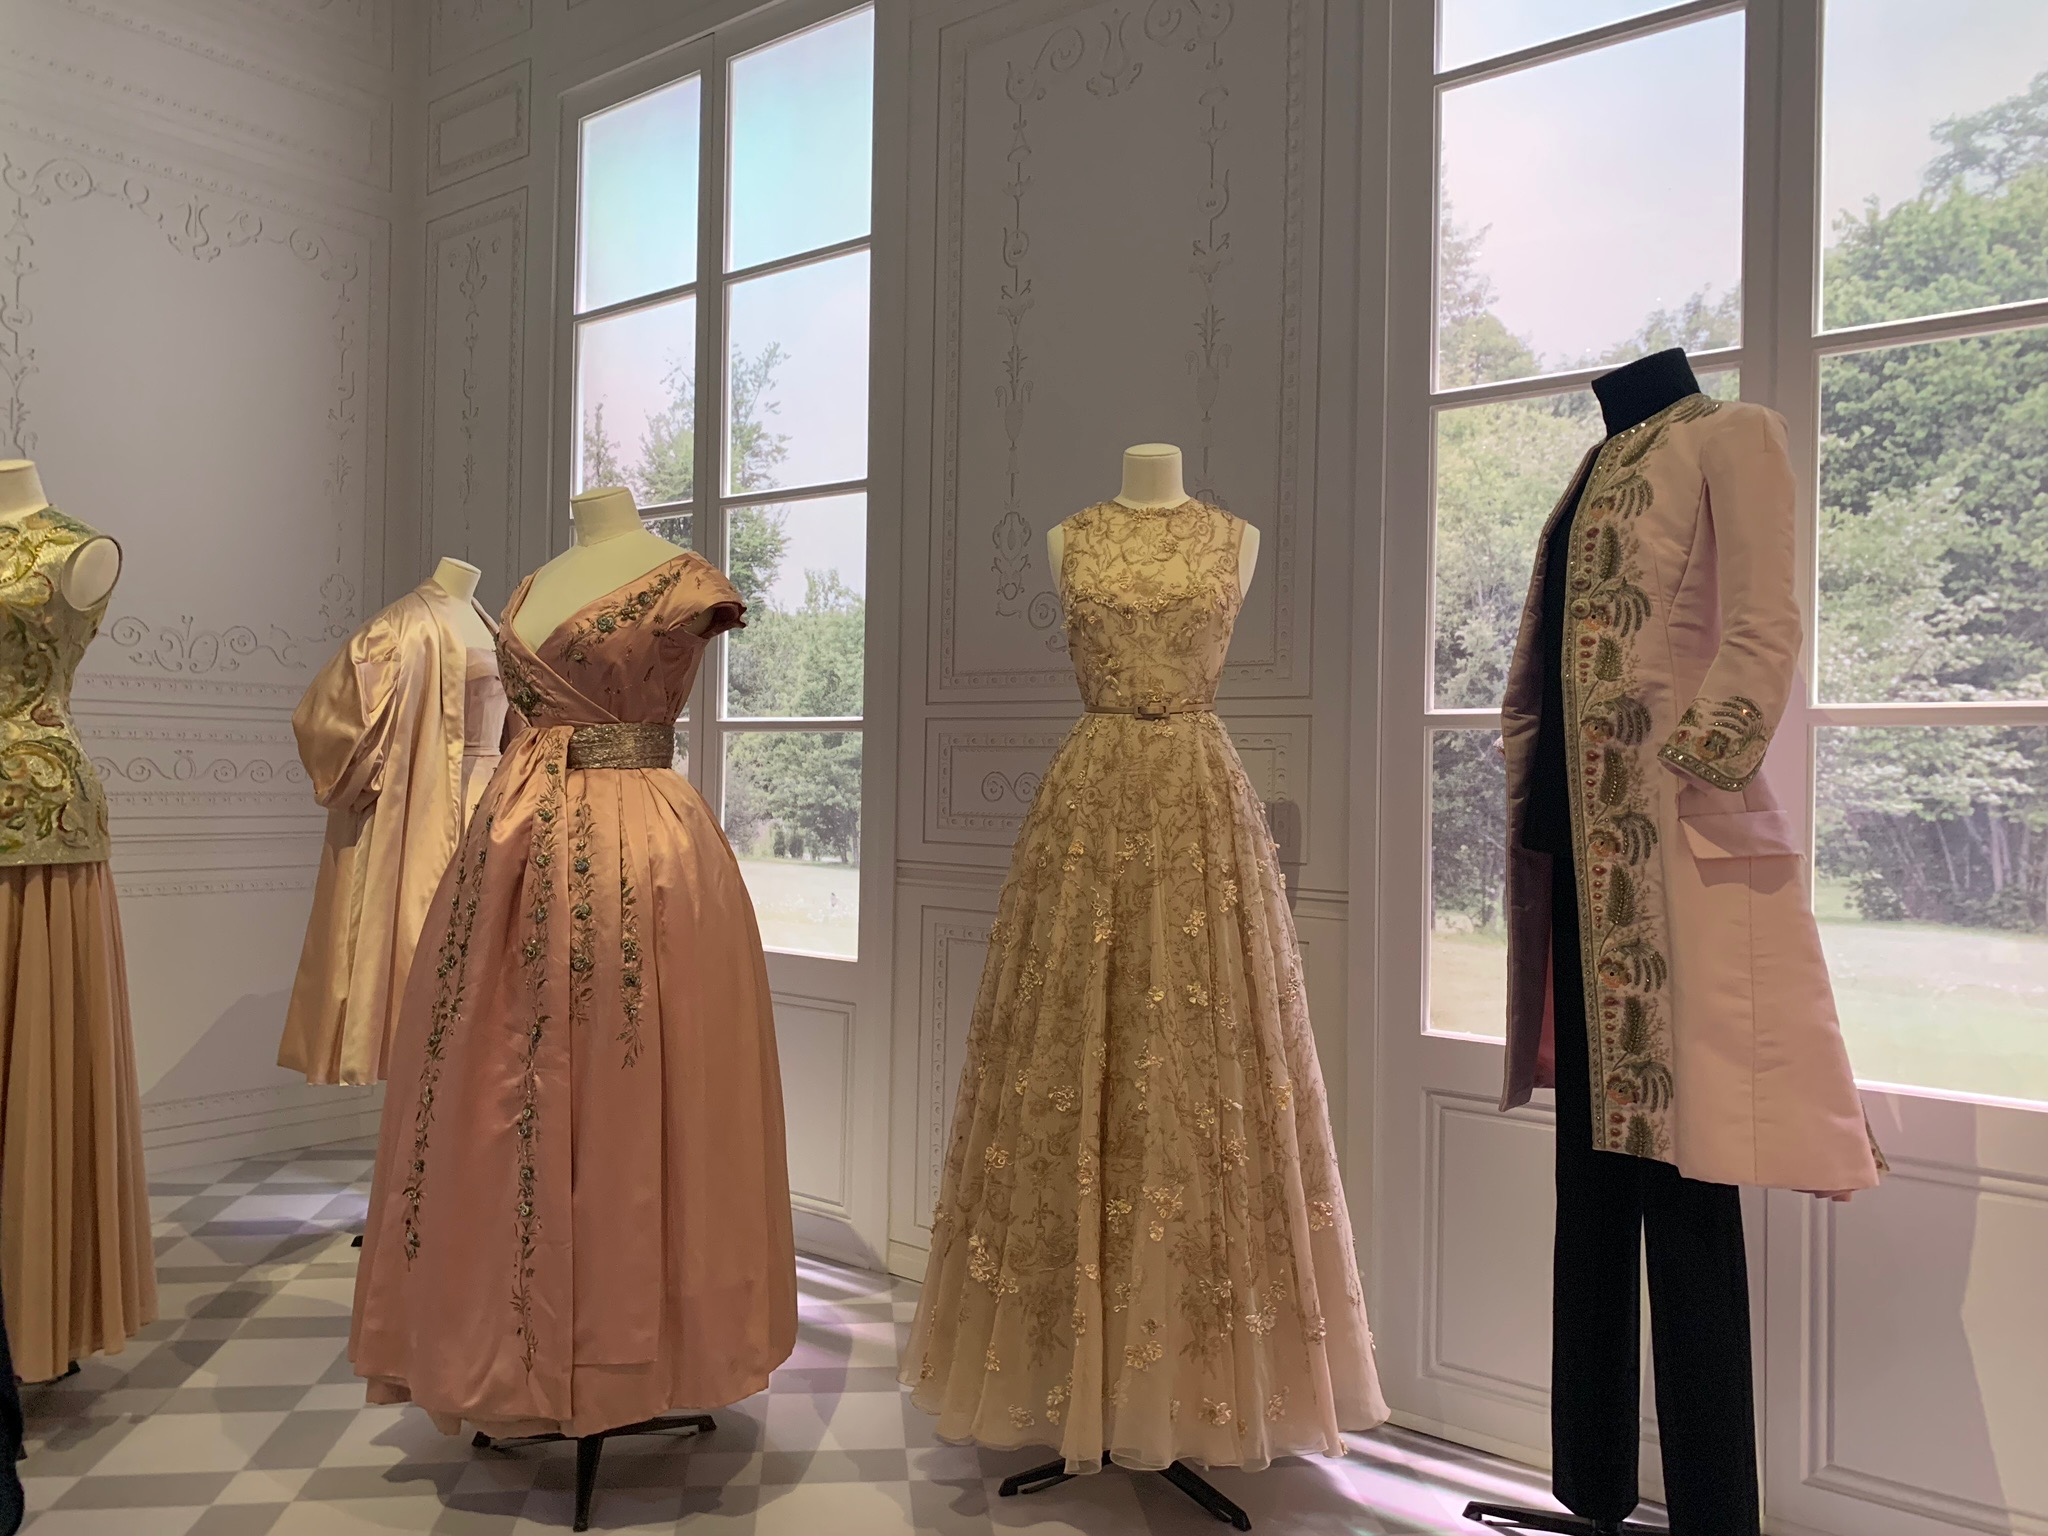 historical based dior gowns.jpg